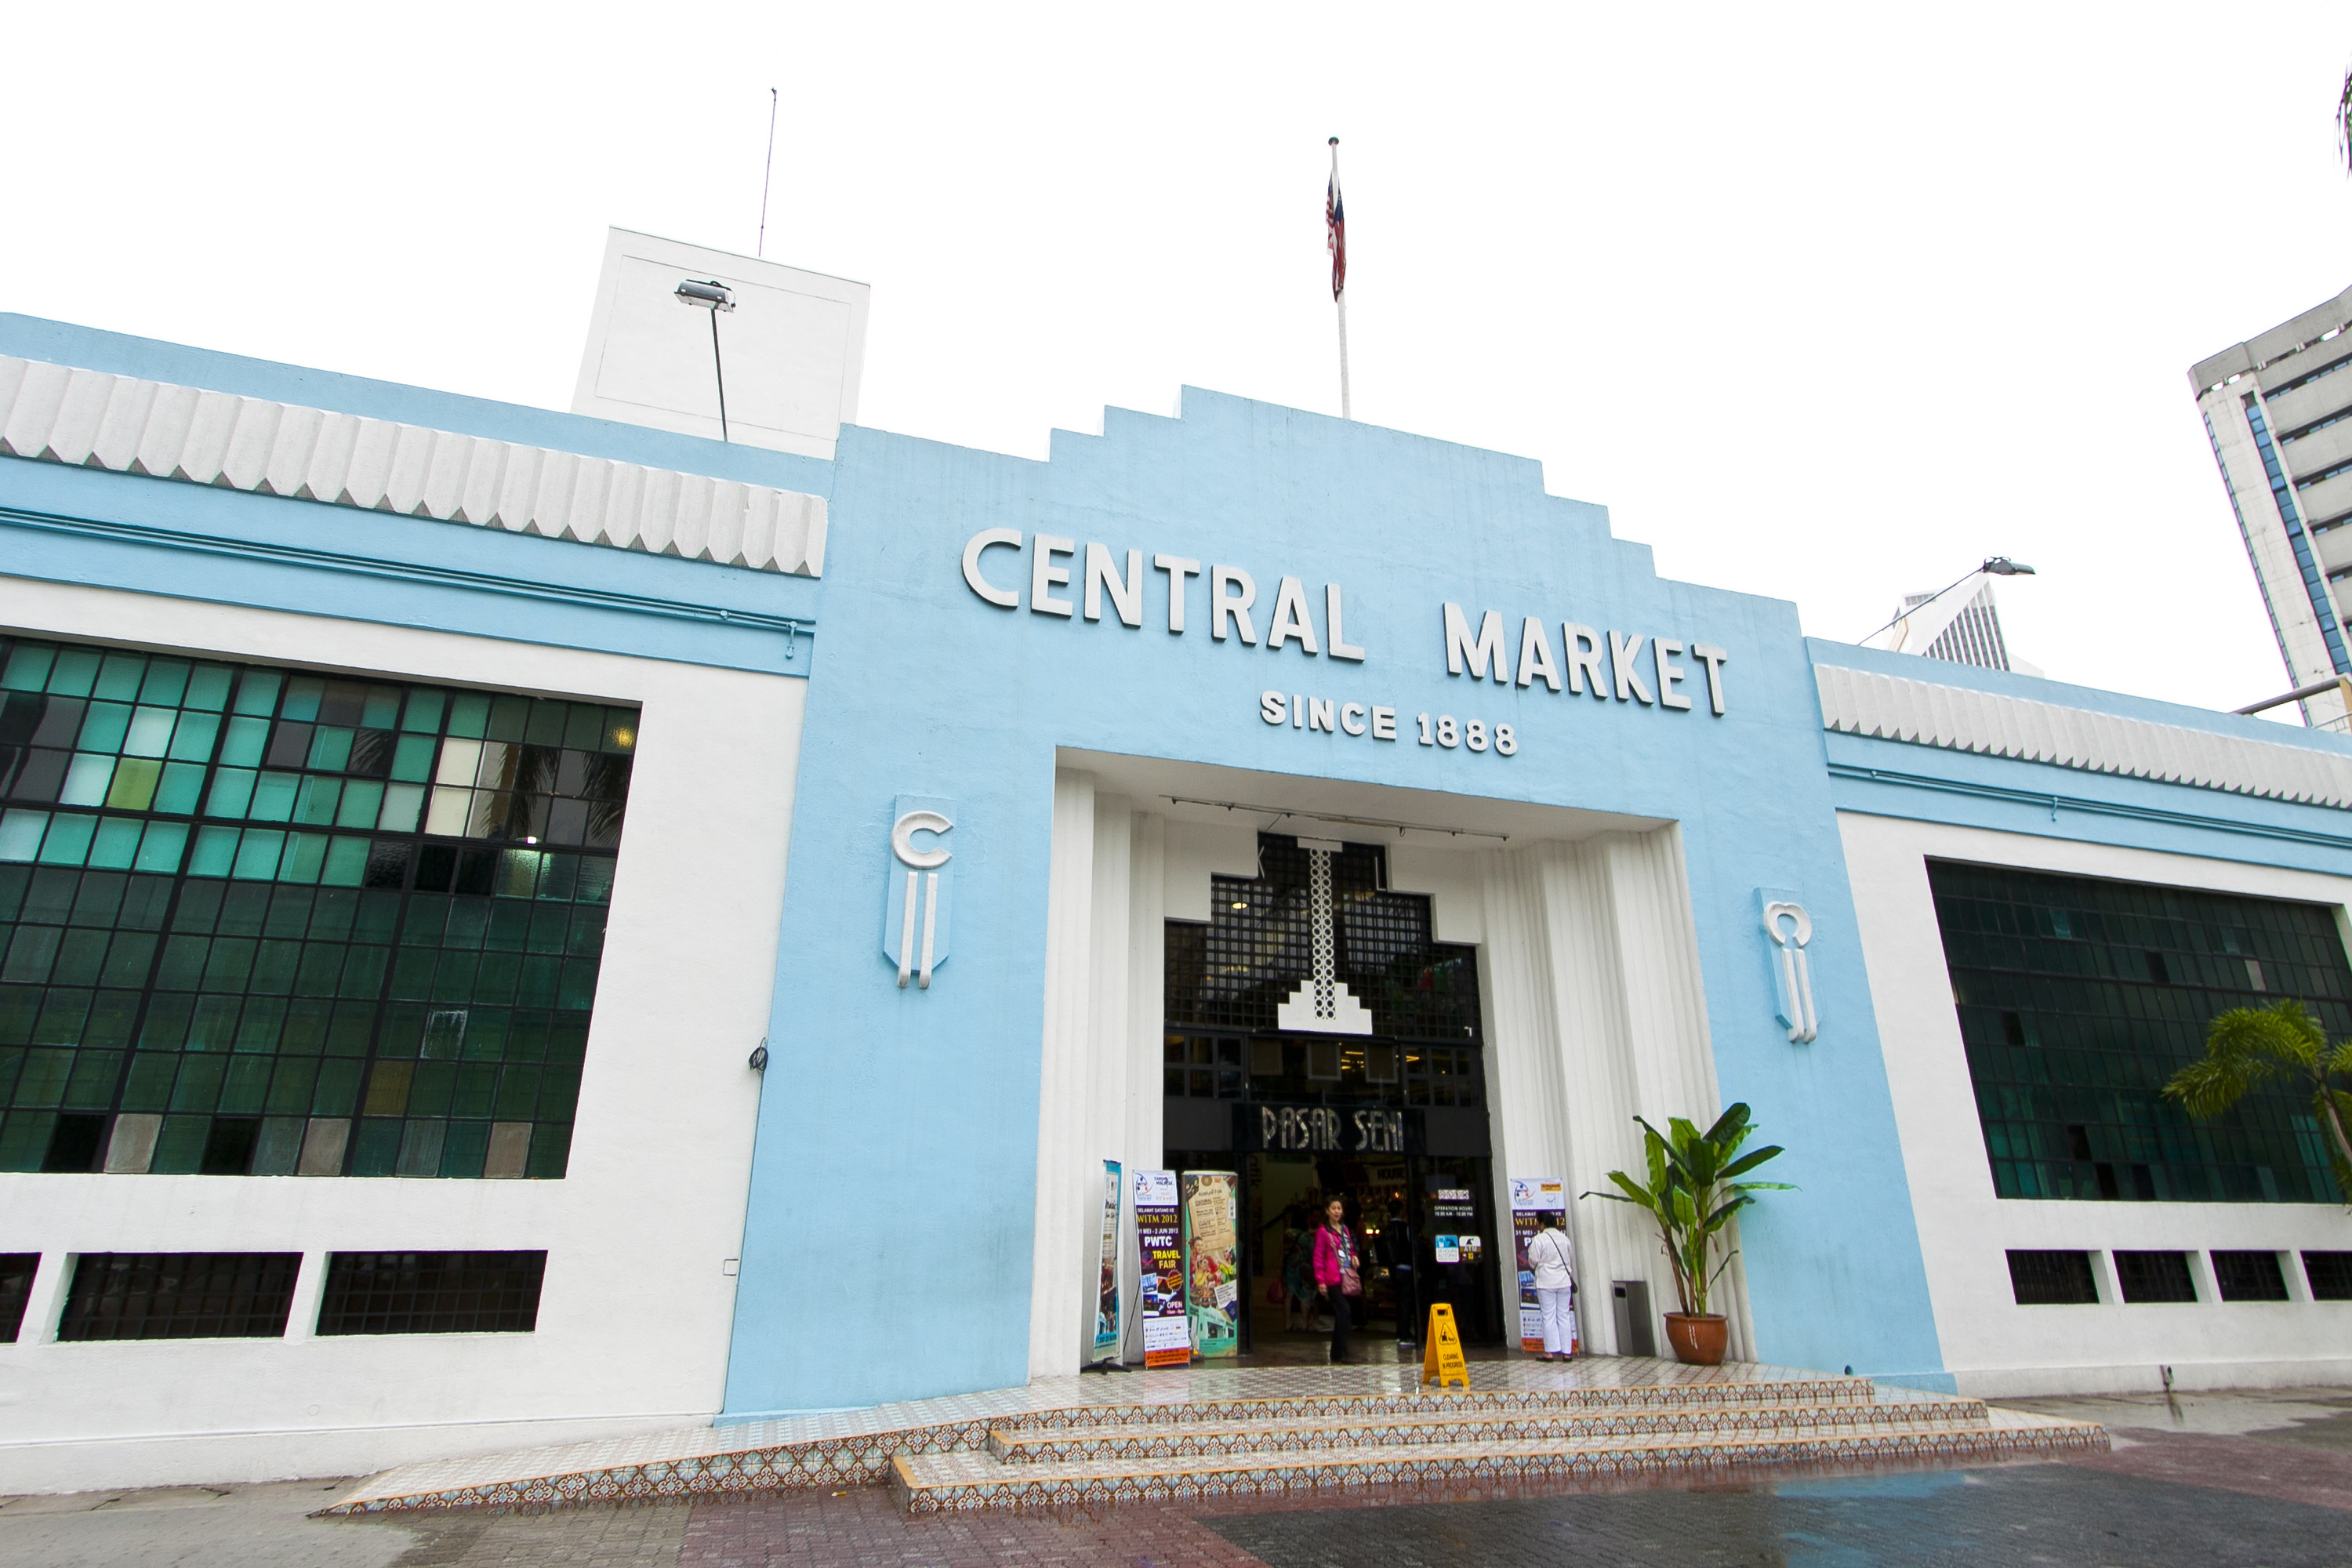 Buy a keris at Central Market for self defence